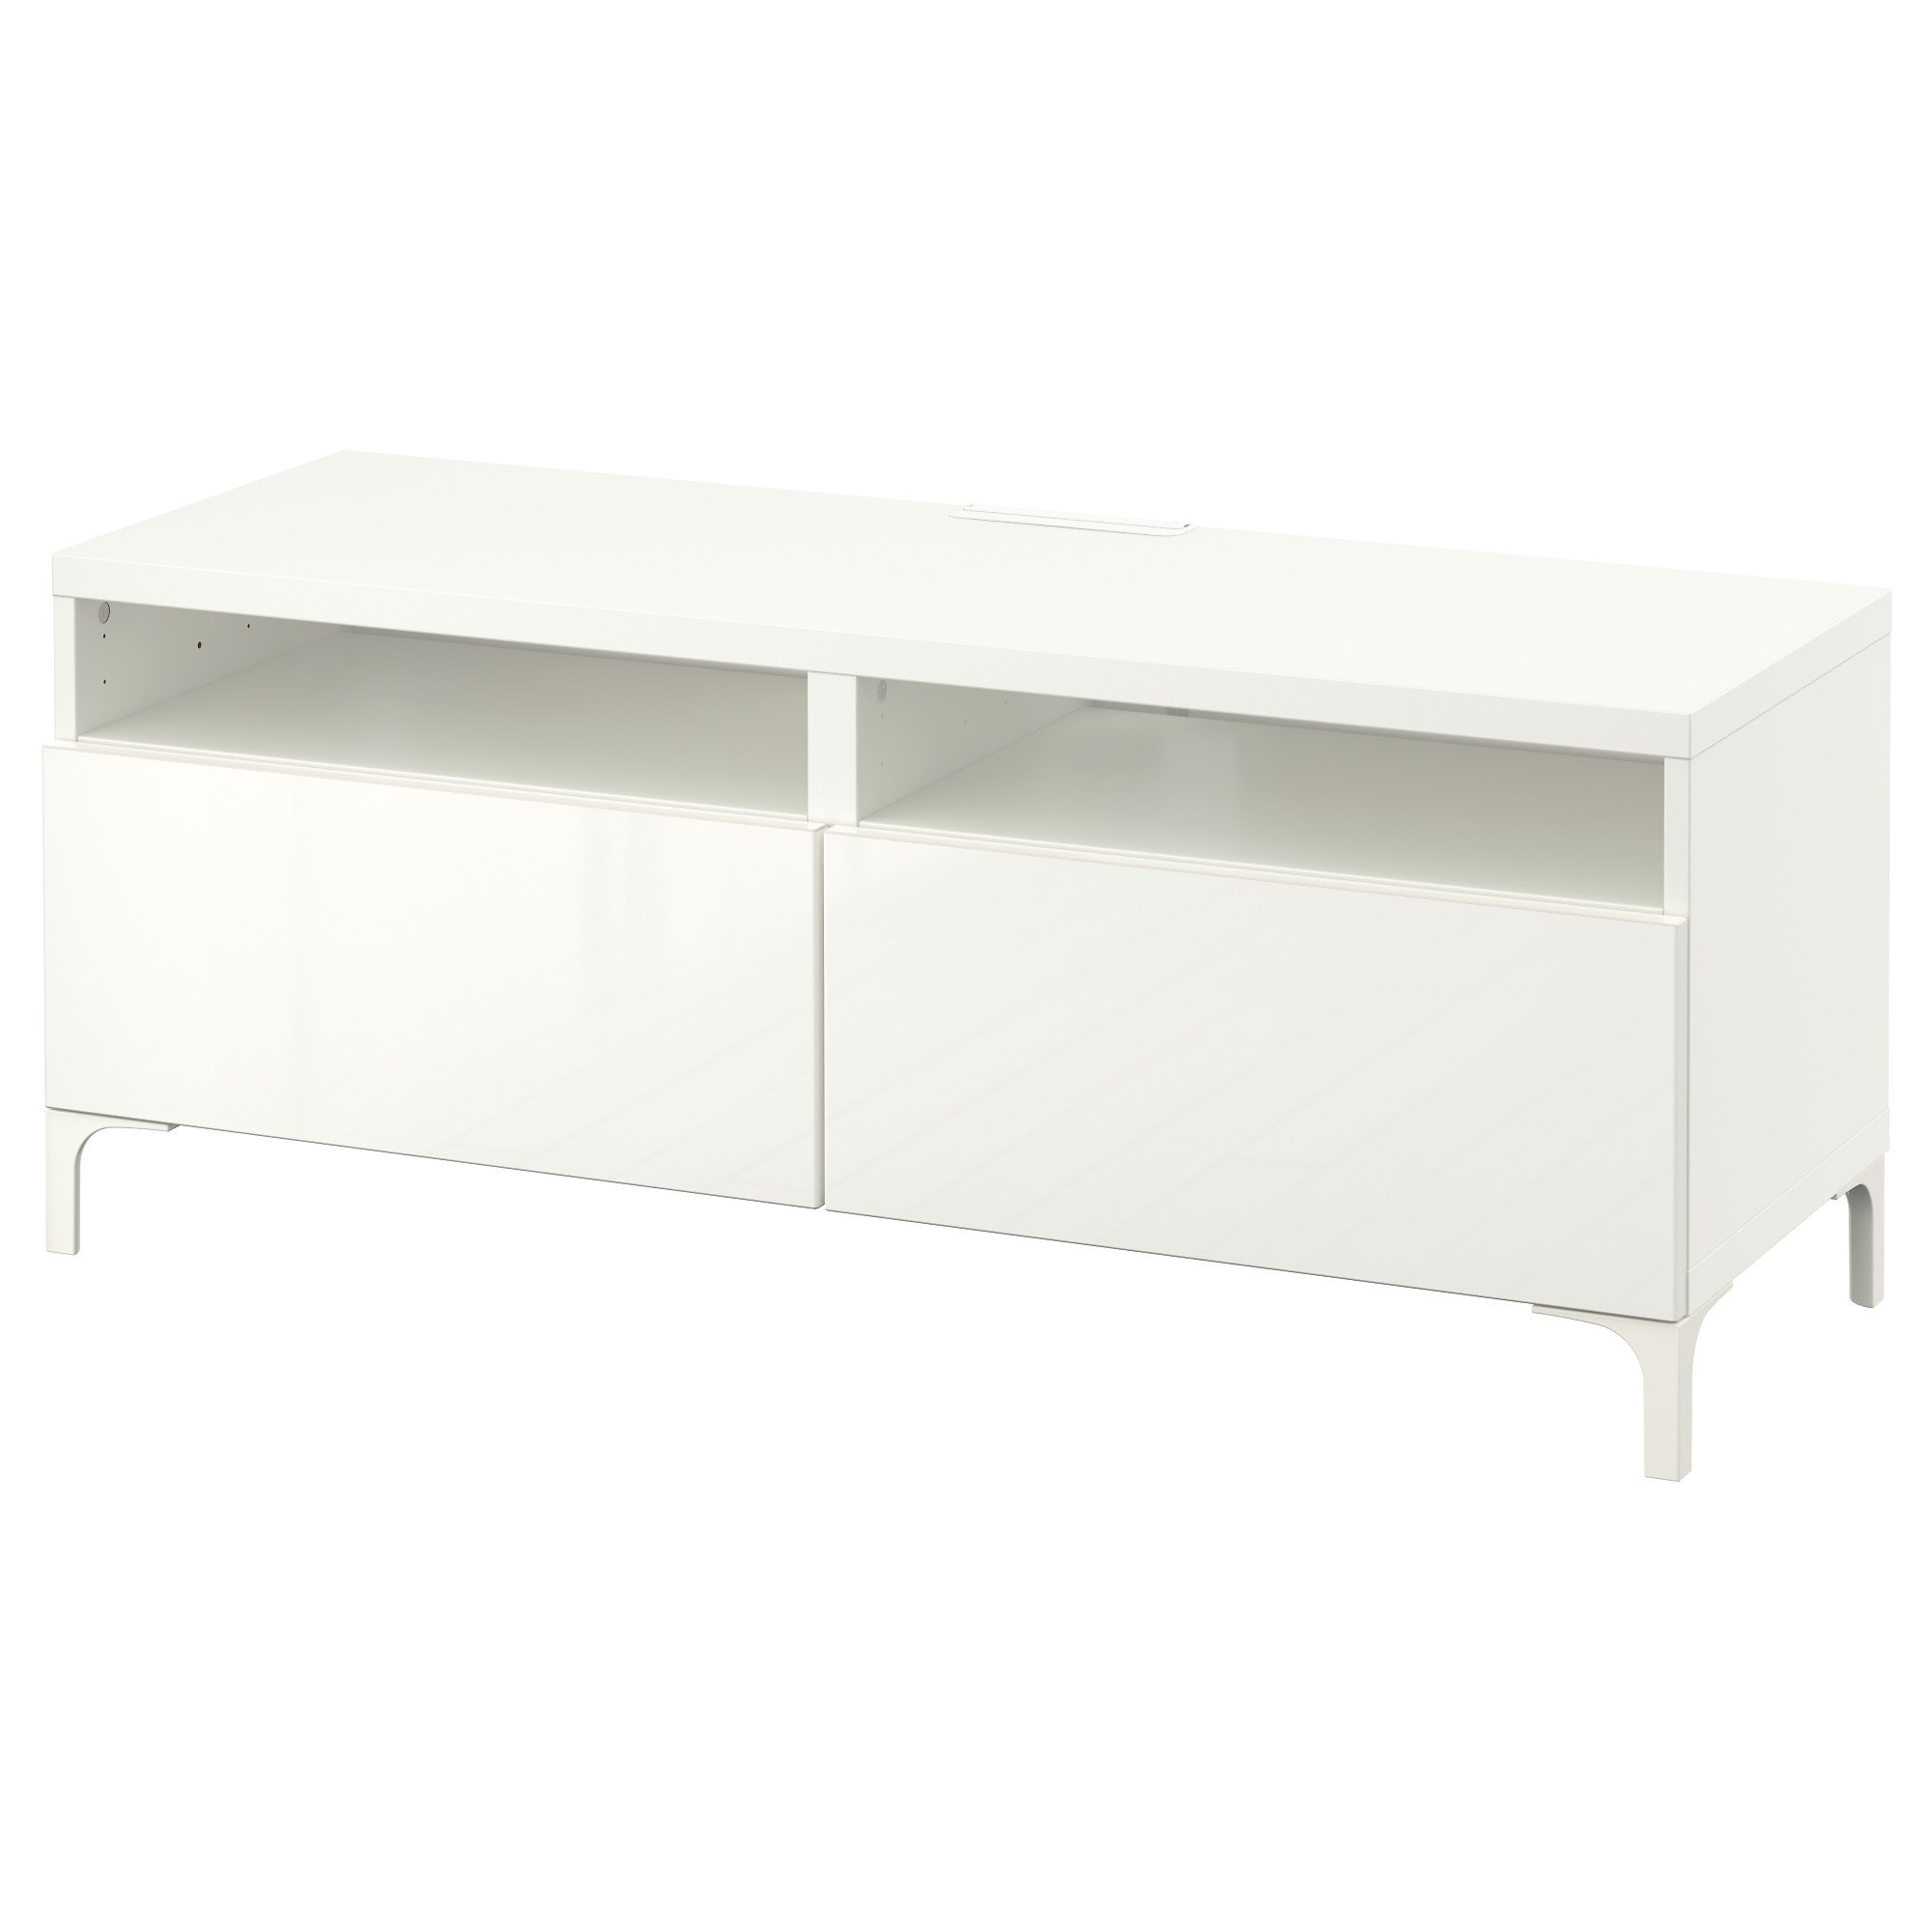 ikea tv stand white gloss tv stands tv cabinets ikea